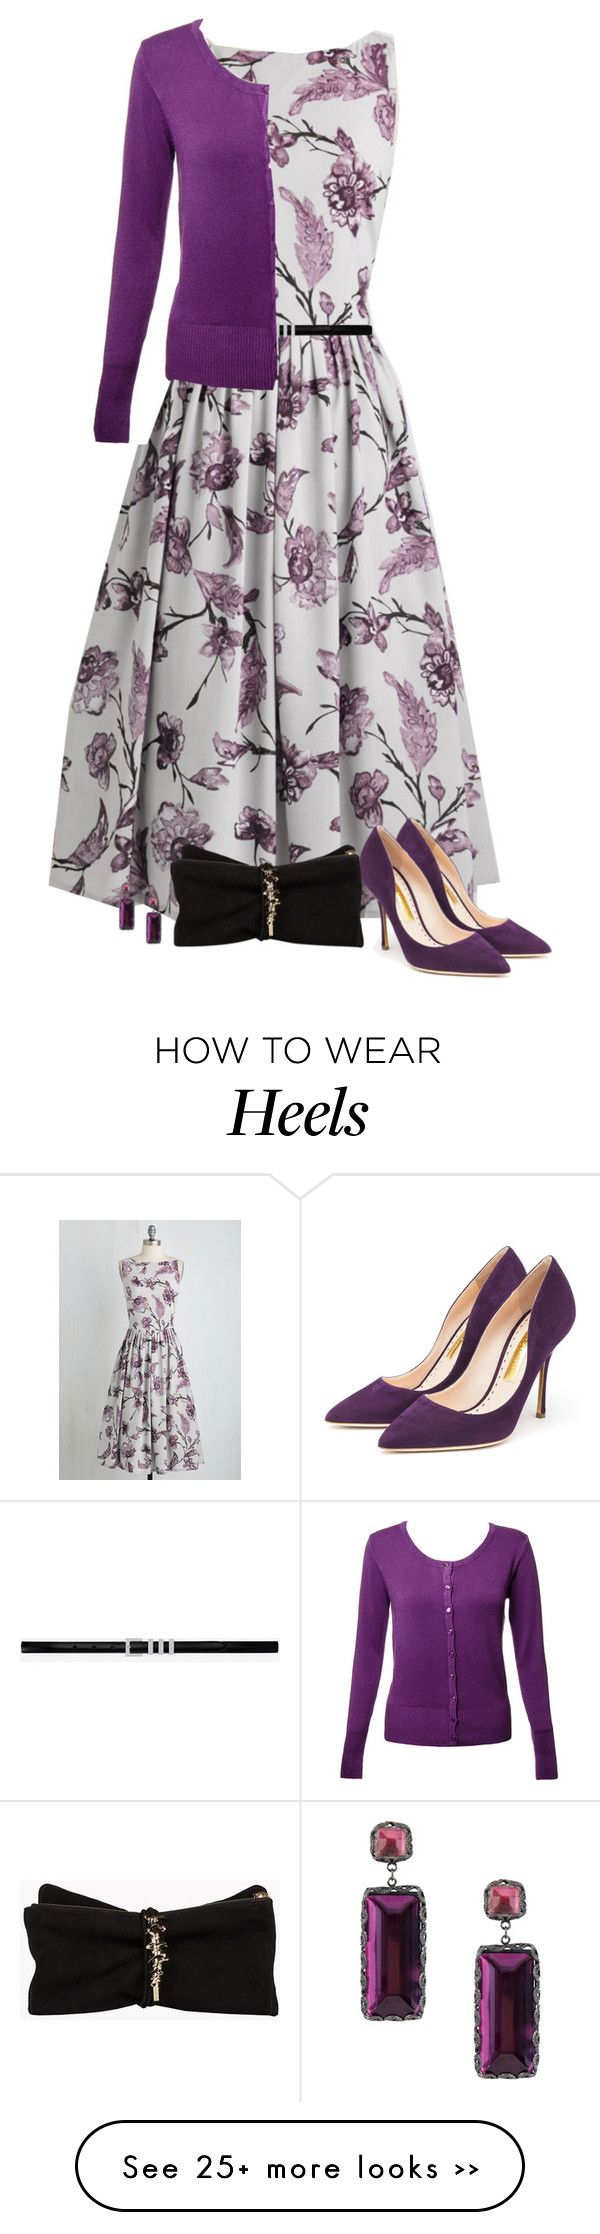 """berrytastic"" by divacrafts on Polyvore"